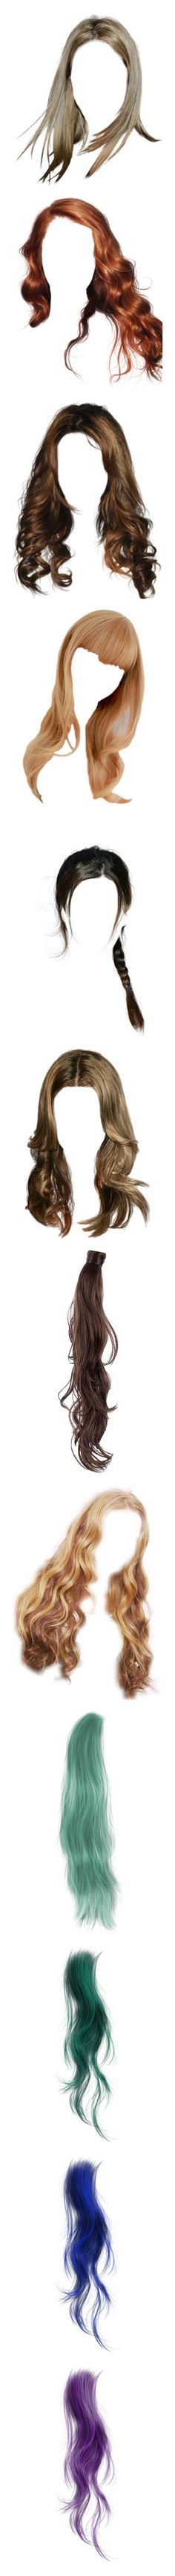 """""""Hair"""" by janjanzira-1 ❤ liked on Polyvore featuring beauty products, haircare, hair styling tools, hair, hairstyles, wigs, blonde, body parts, dolls and doll parts"""